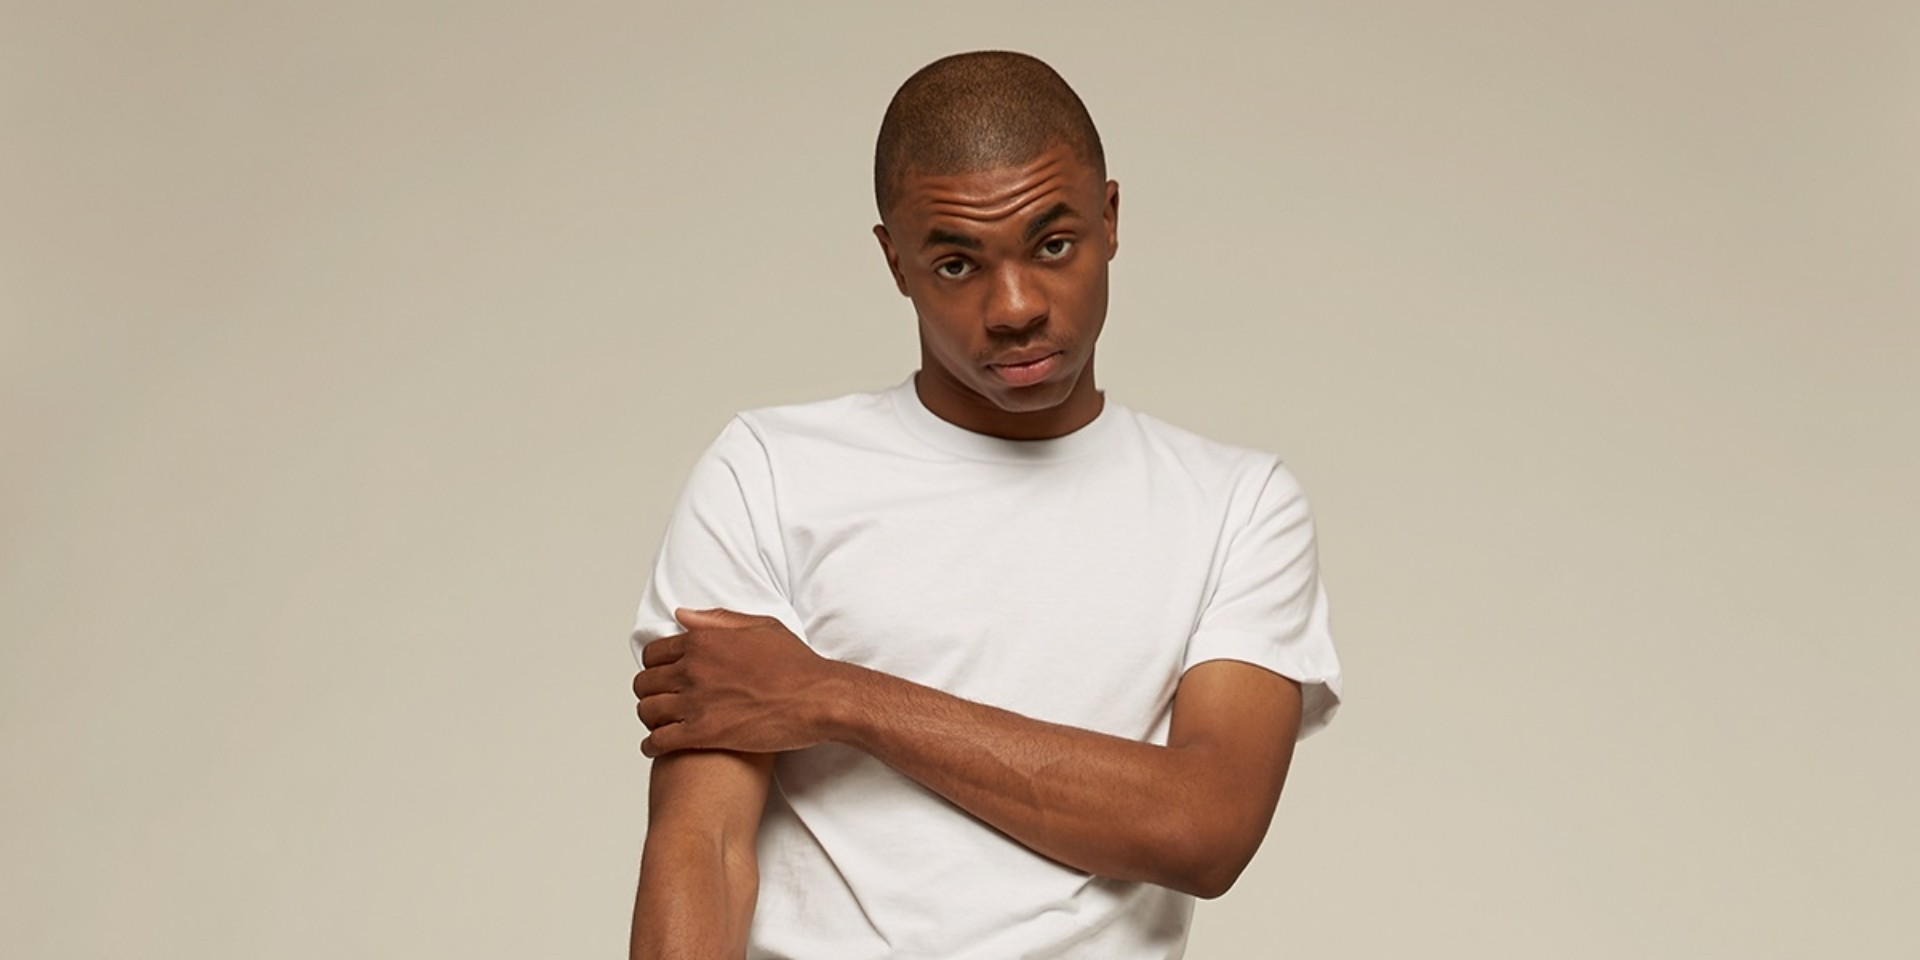 Vince Staples will release a new project this Friday